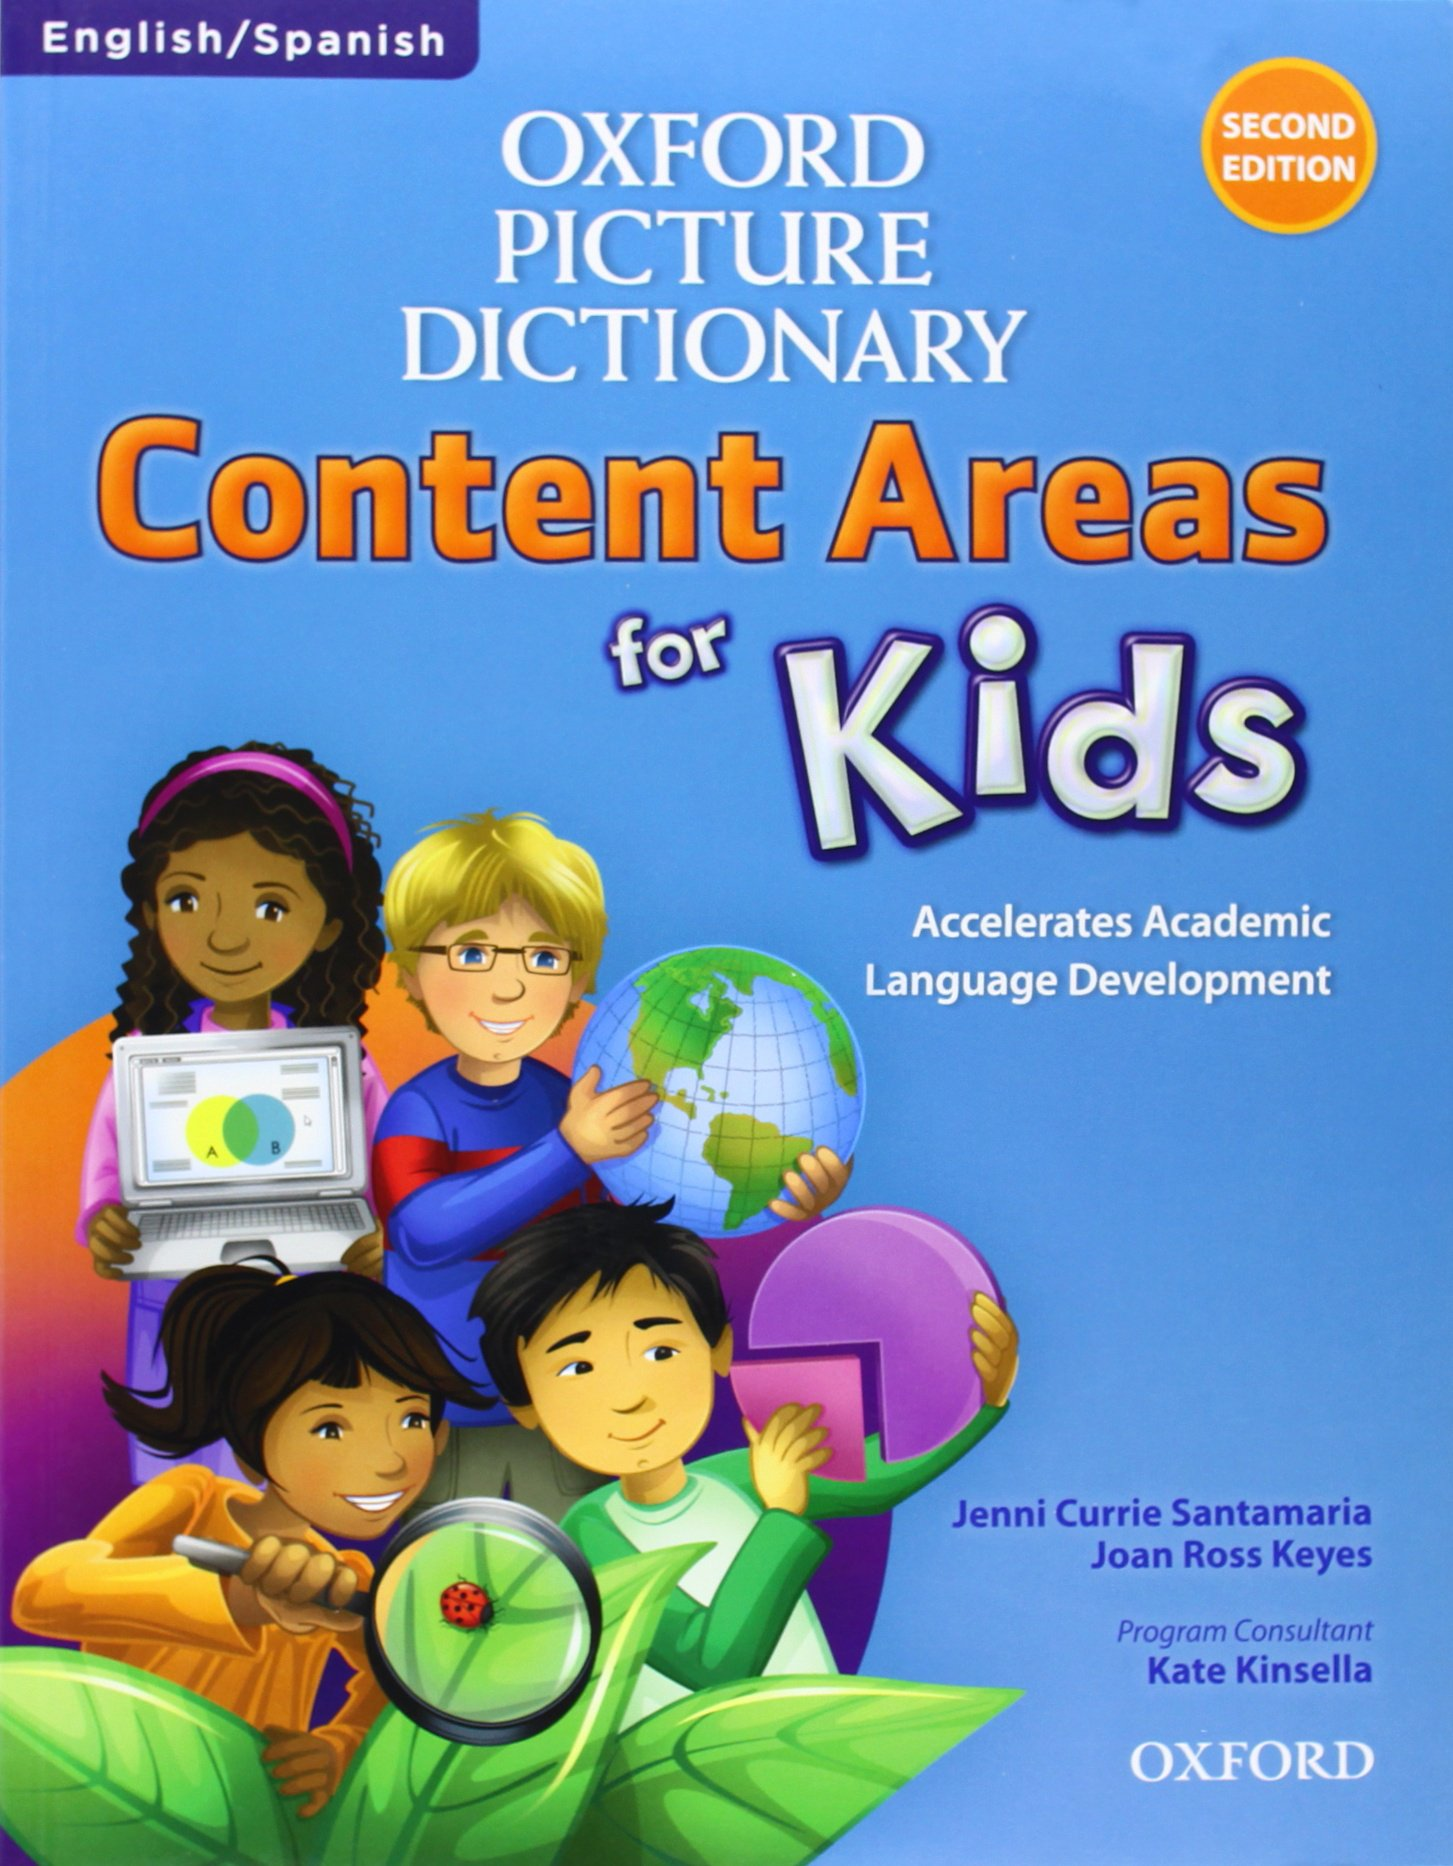 Oxford picture dictionary content area for kids english spanish dictionary oxford picture dictionary content areas for kids jenni currie santamaria